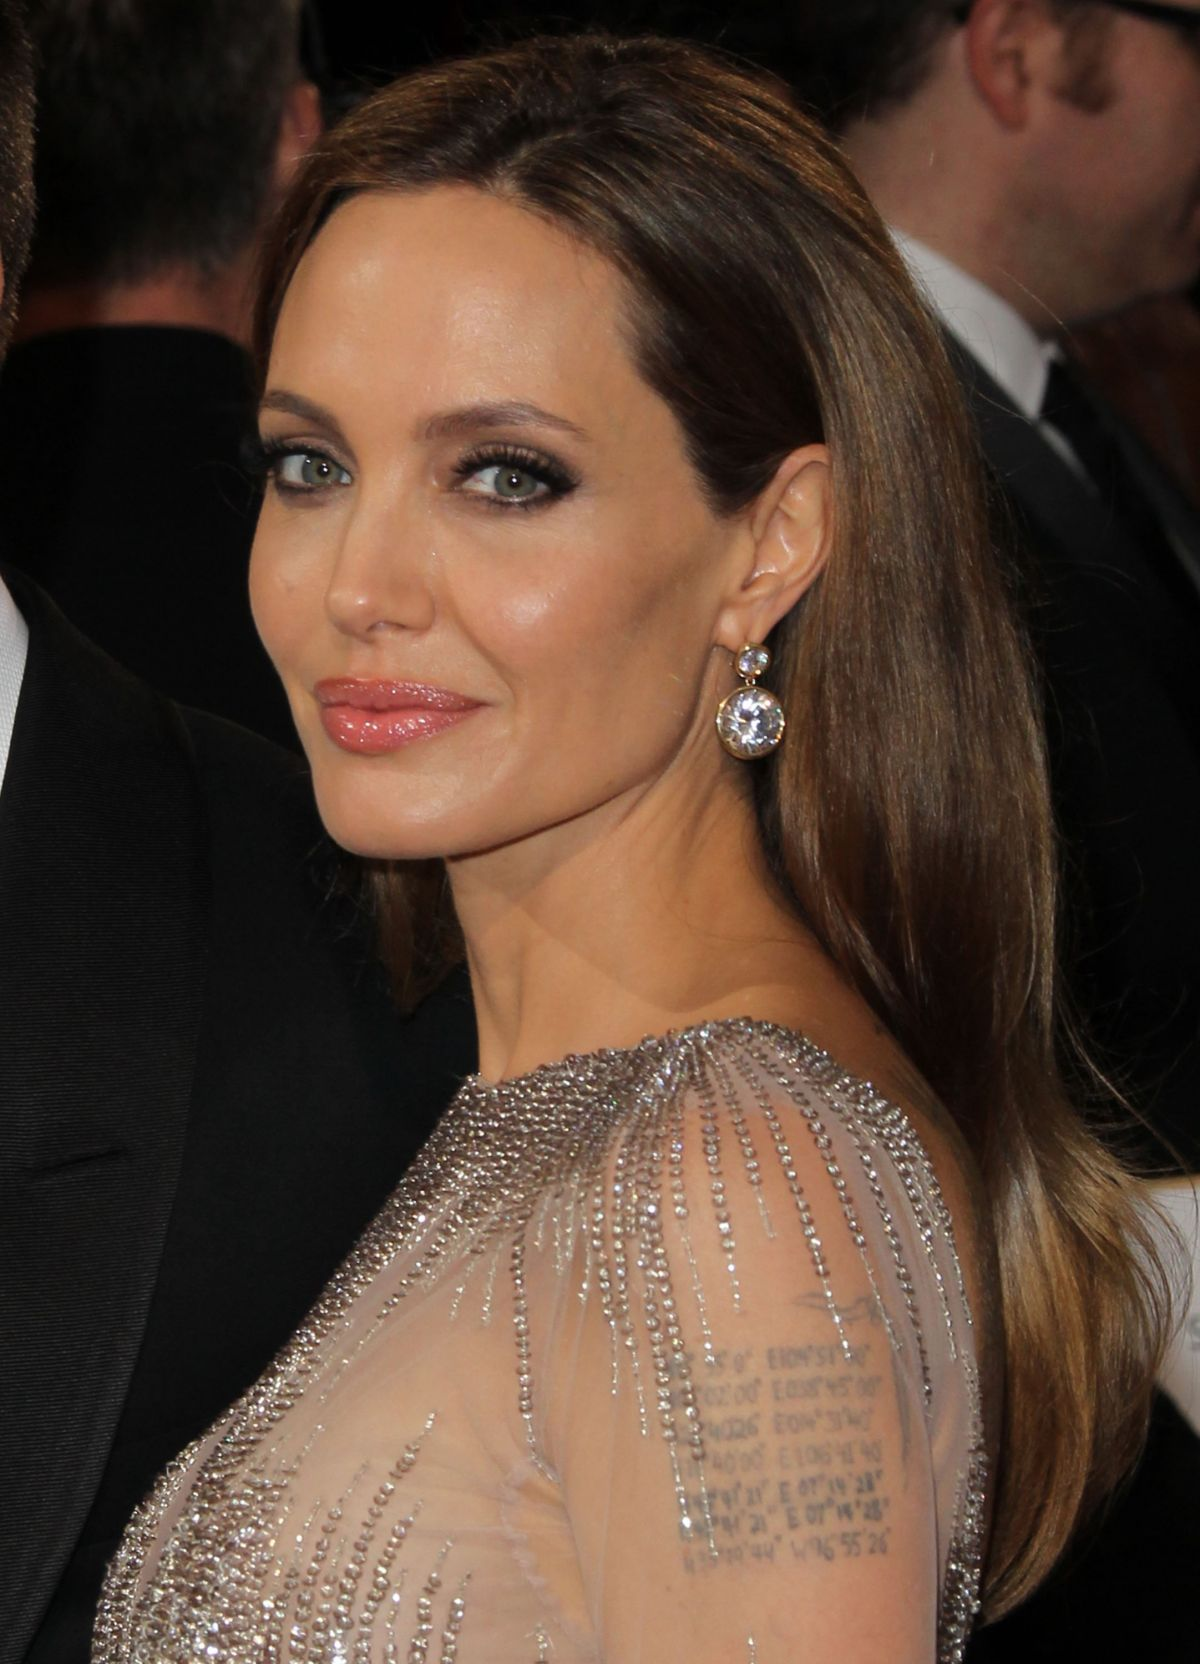 ANGELINA JOLIE at 86th Annual Academy Awards in Hollywood - HawtCelebs